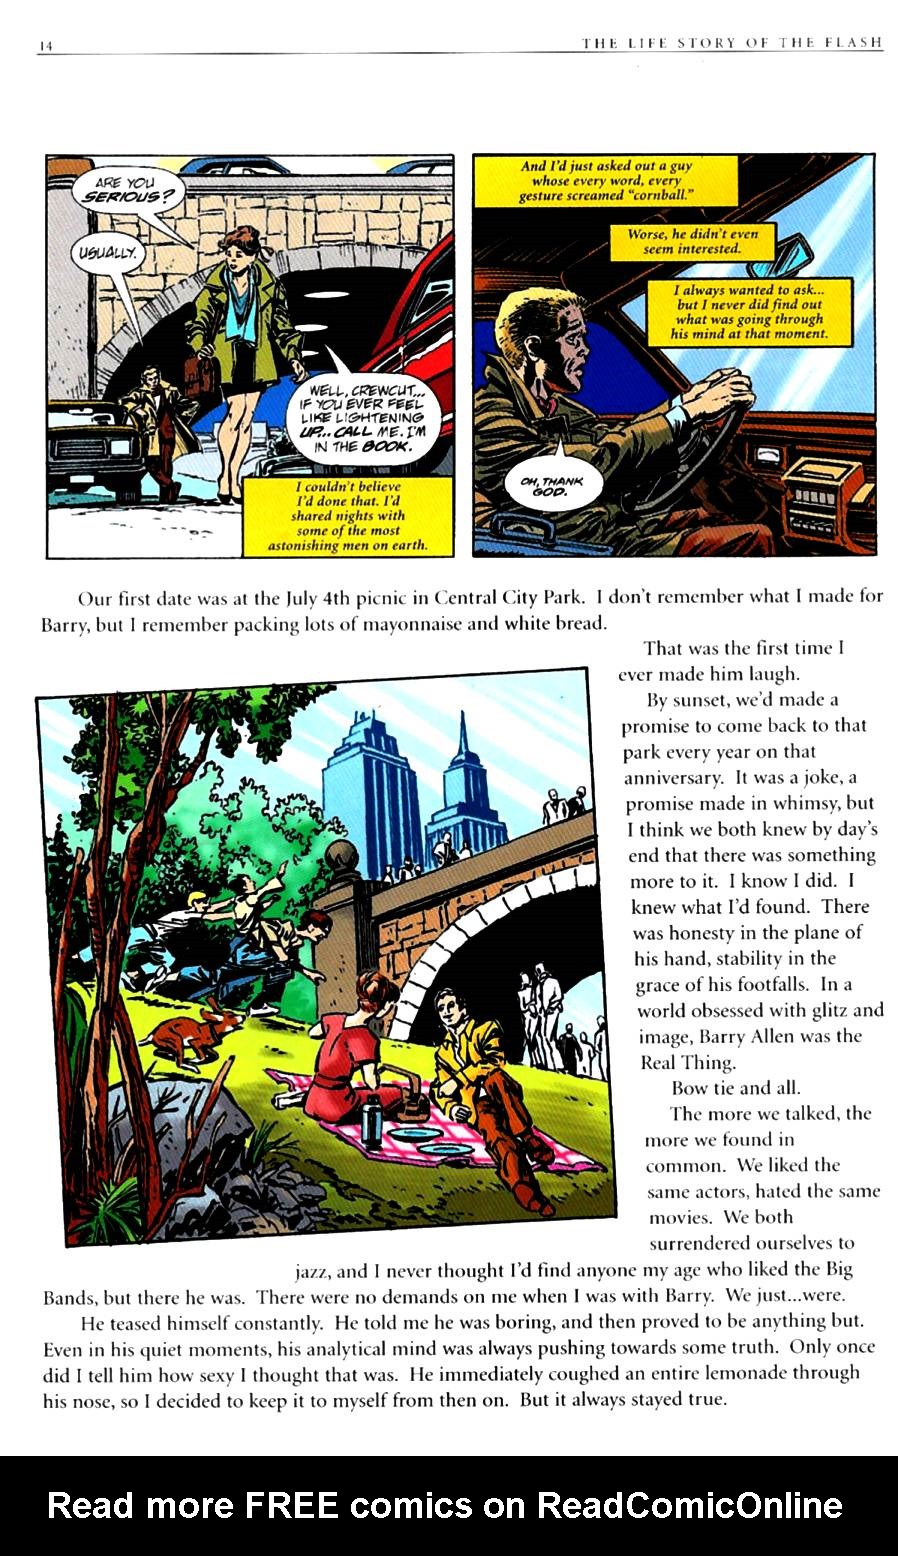 Read online The Life Story of the Flash comic -  Issue # Full - 16